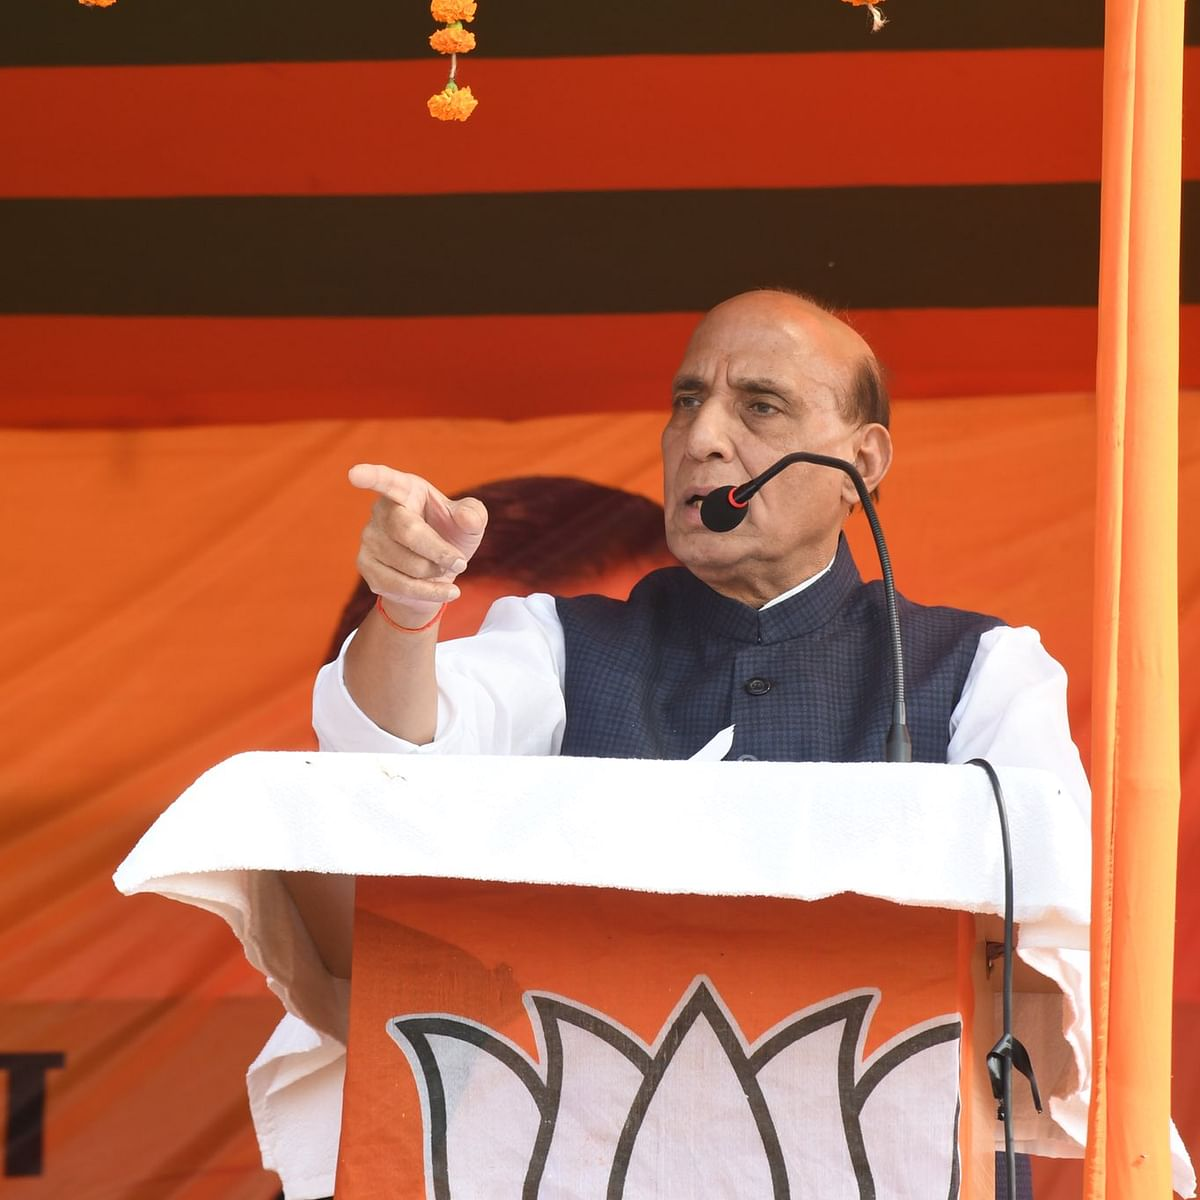 'Pakistan has illegally occupied Gilgit-Baltistan': Rajnath Singh after Imran Khan grants it provisional provincial status